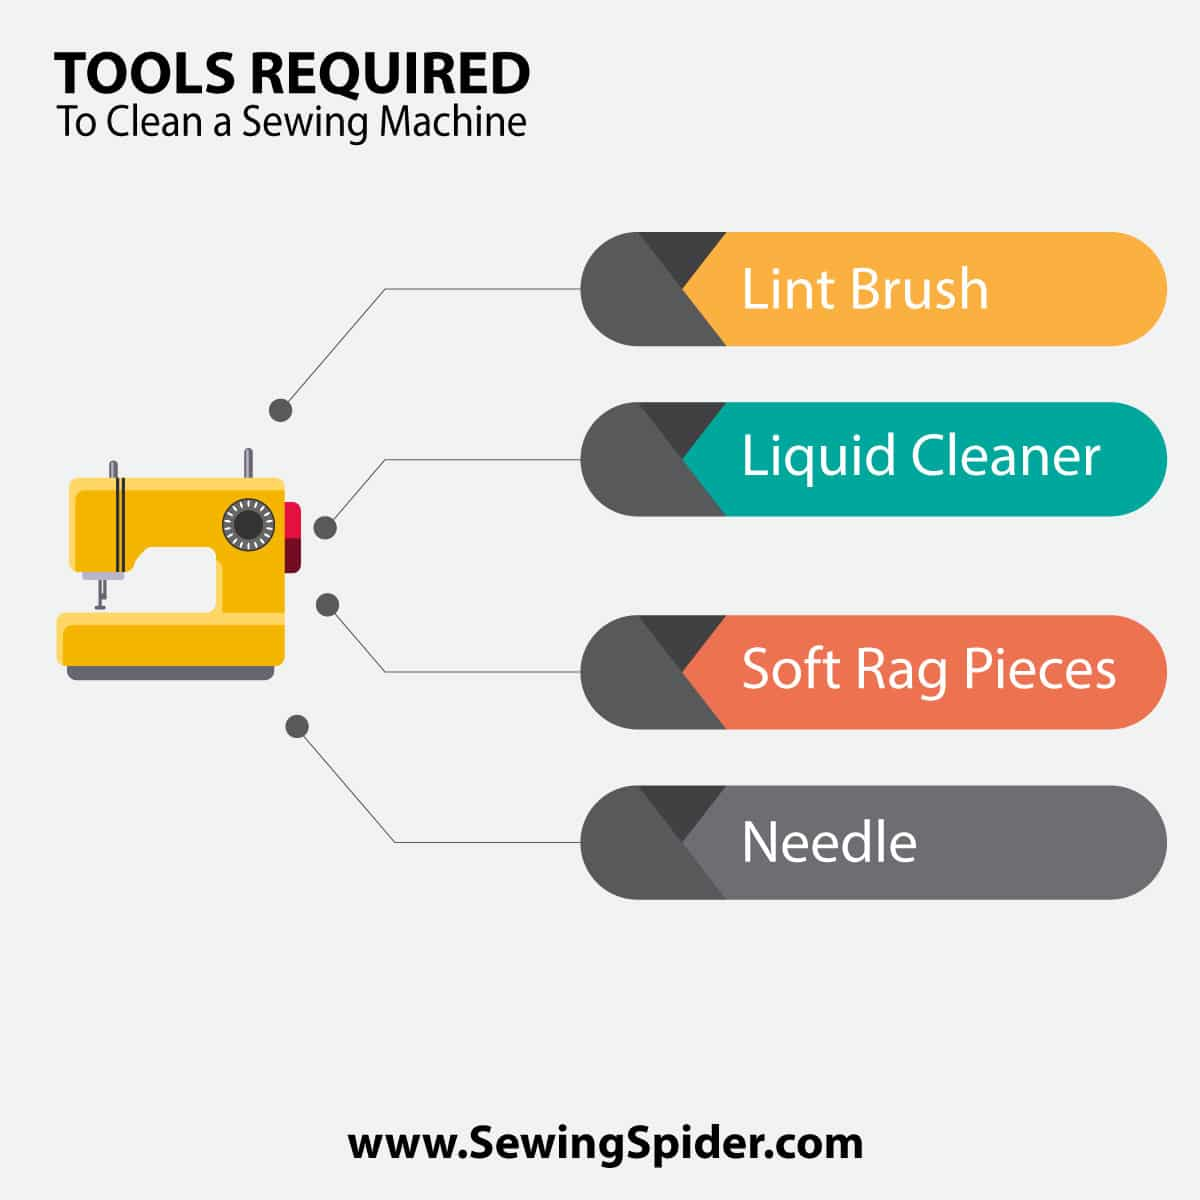 Tools required to clean a sewing machine